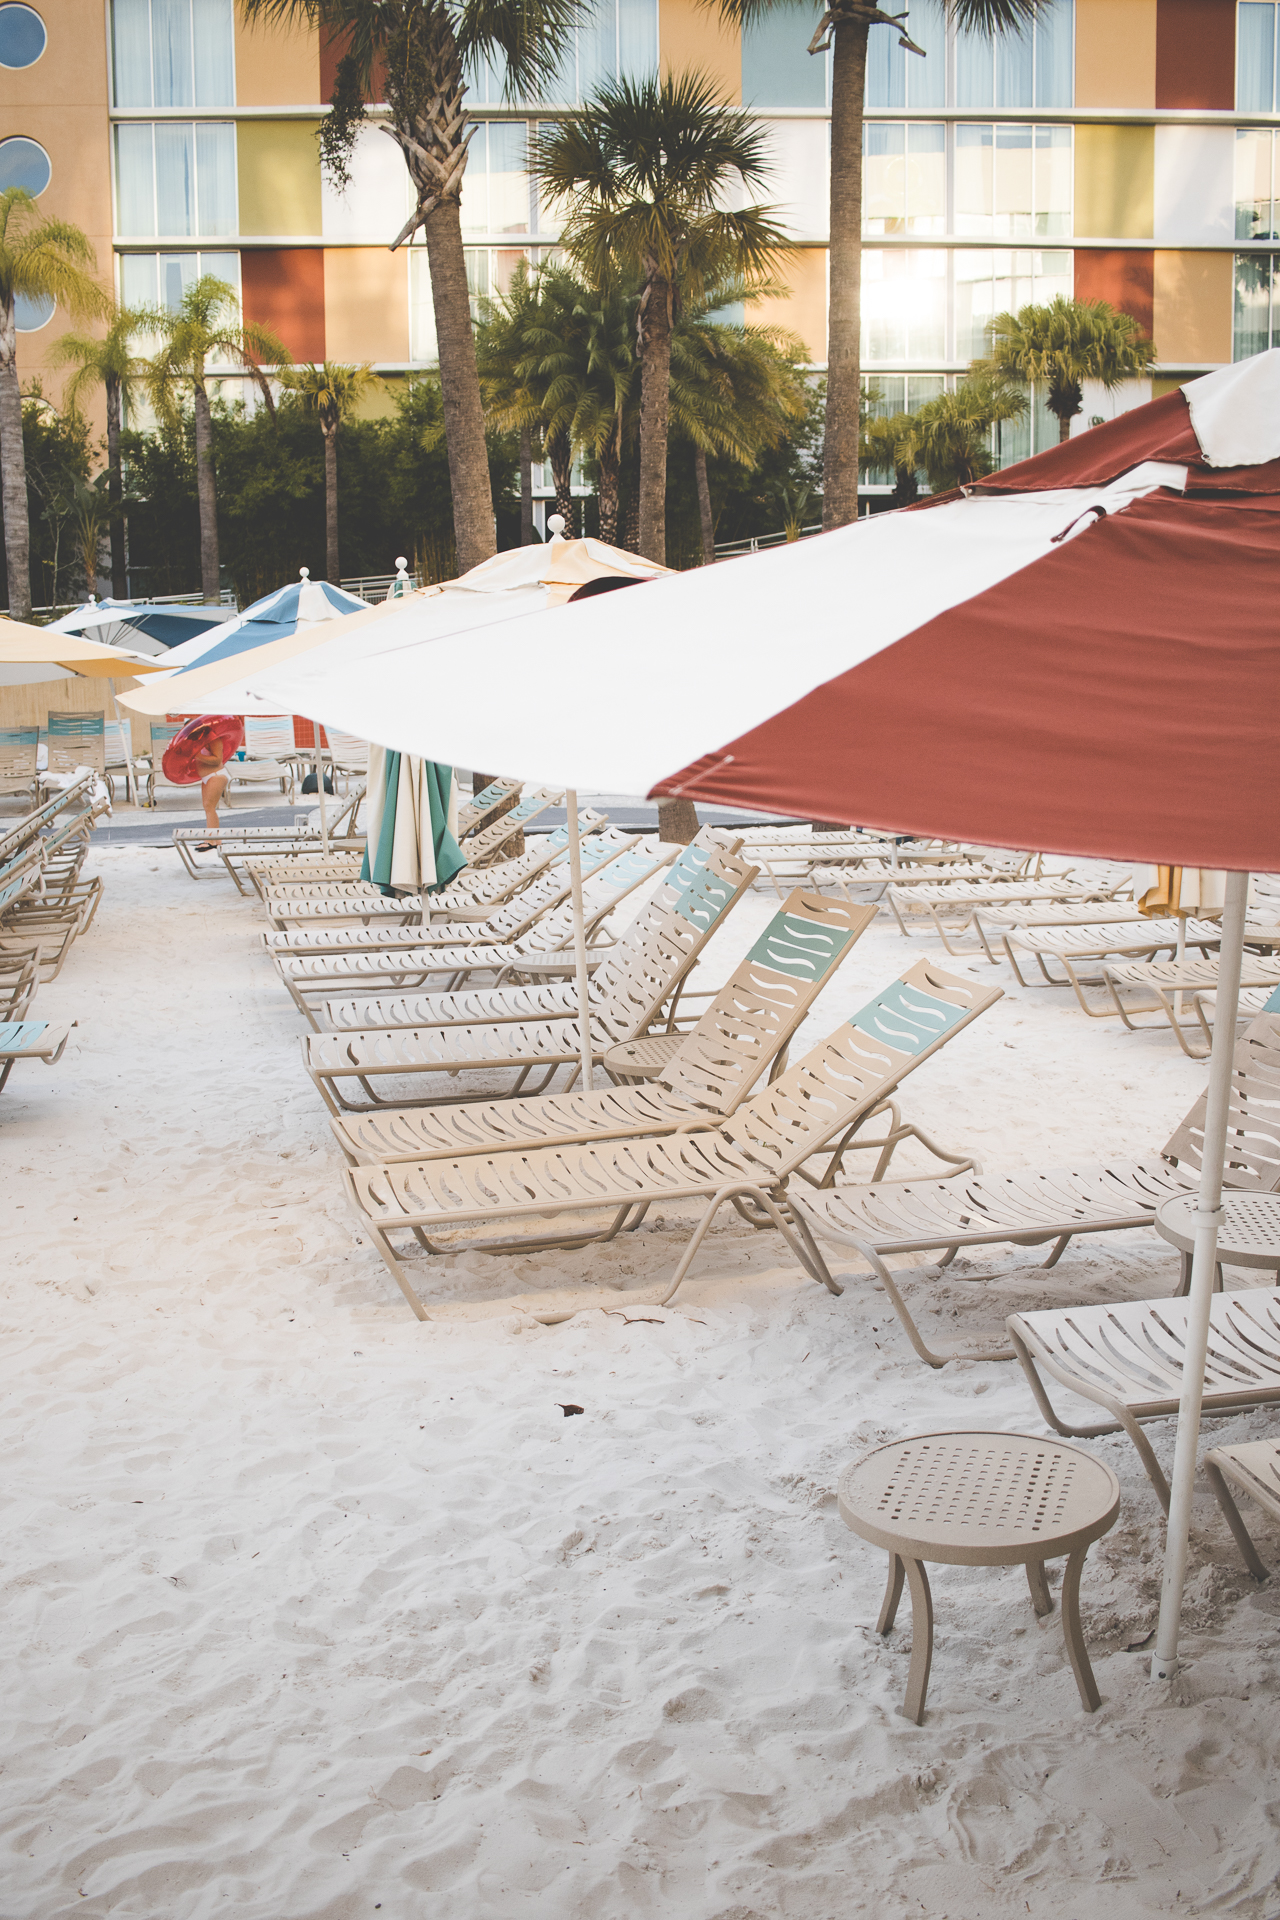 There's something for everyone who wants to enjoy fun in the sun. A major highlight is that you can rent a private cabana (their namesake) at one of their TWO large pools, there's a lazy river with novelty floaties, cozy outdoor fire pits (get those s'more kits I mentioned), and poolside bars.